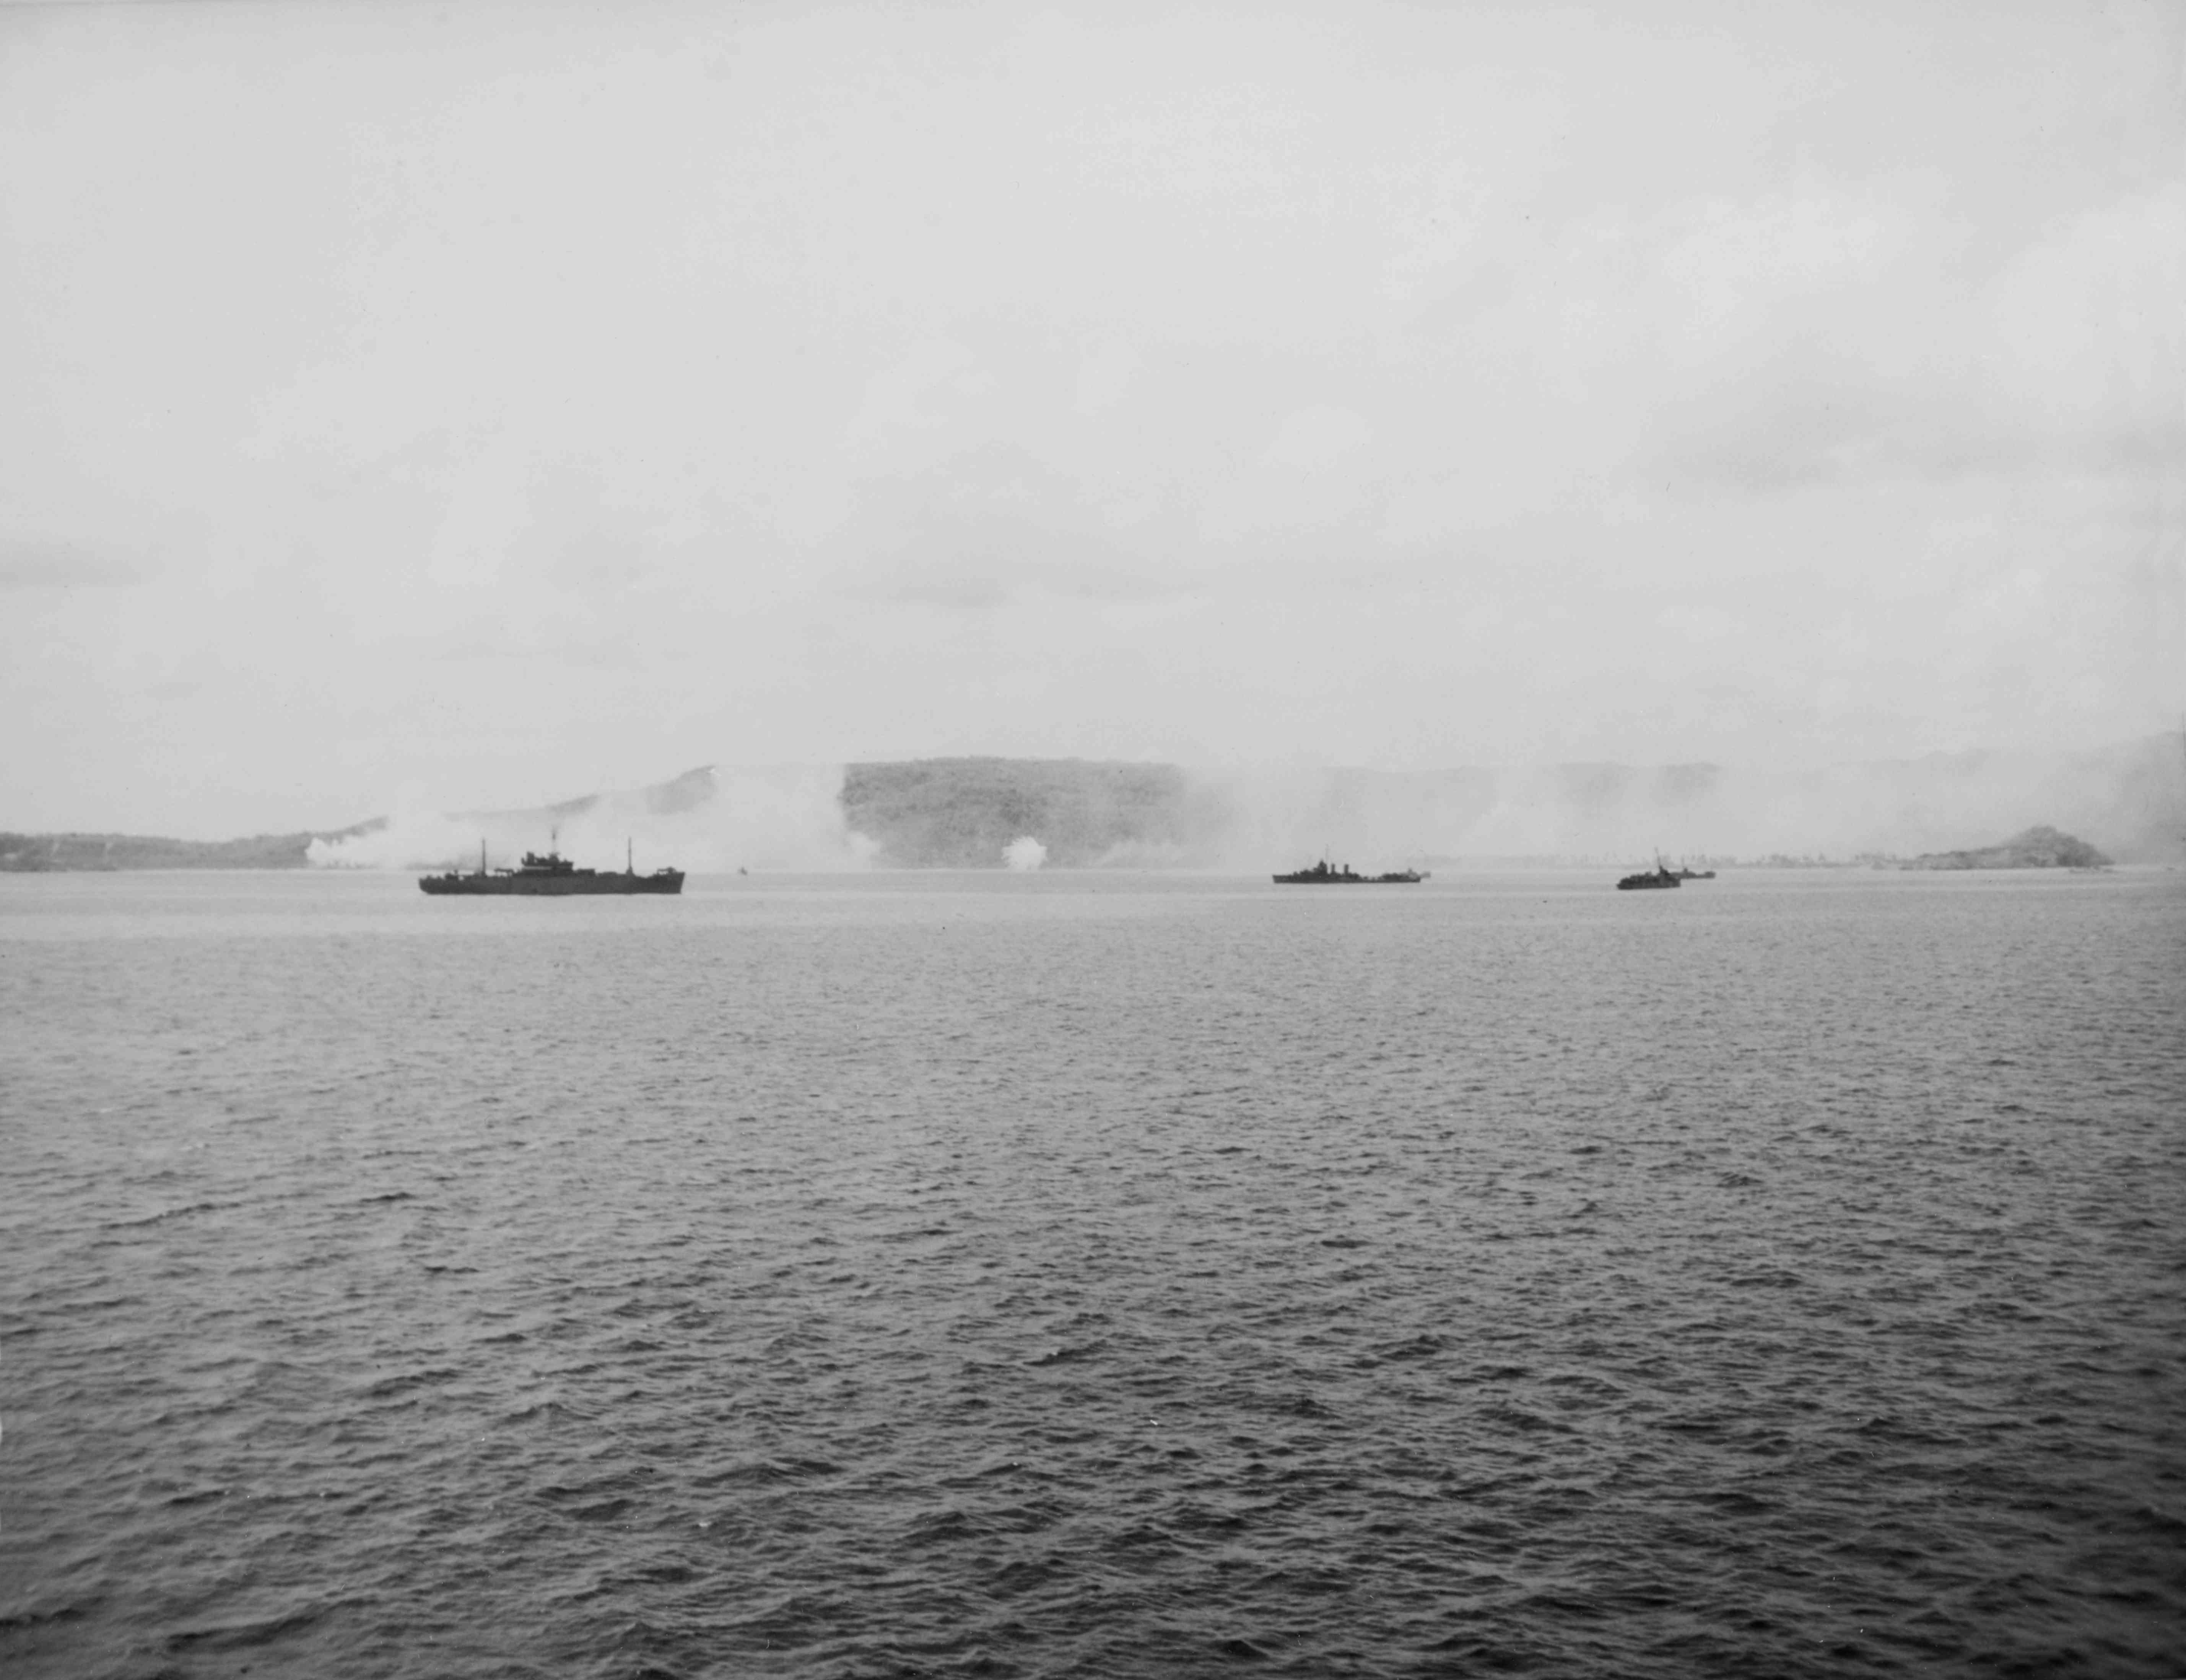 Allied warships firing at targets ashore on Guam.